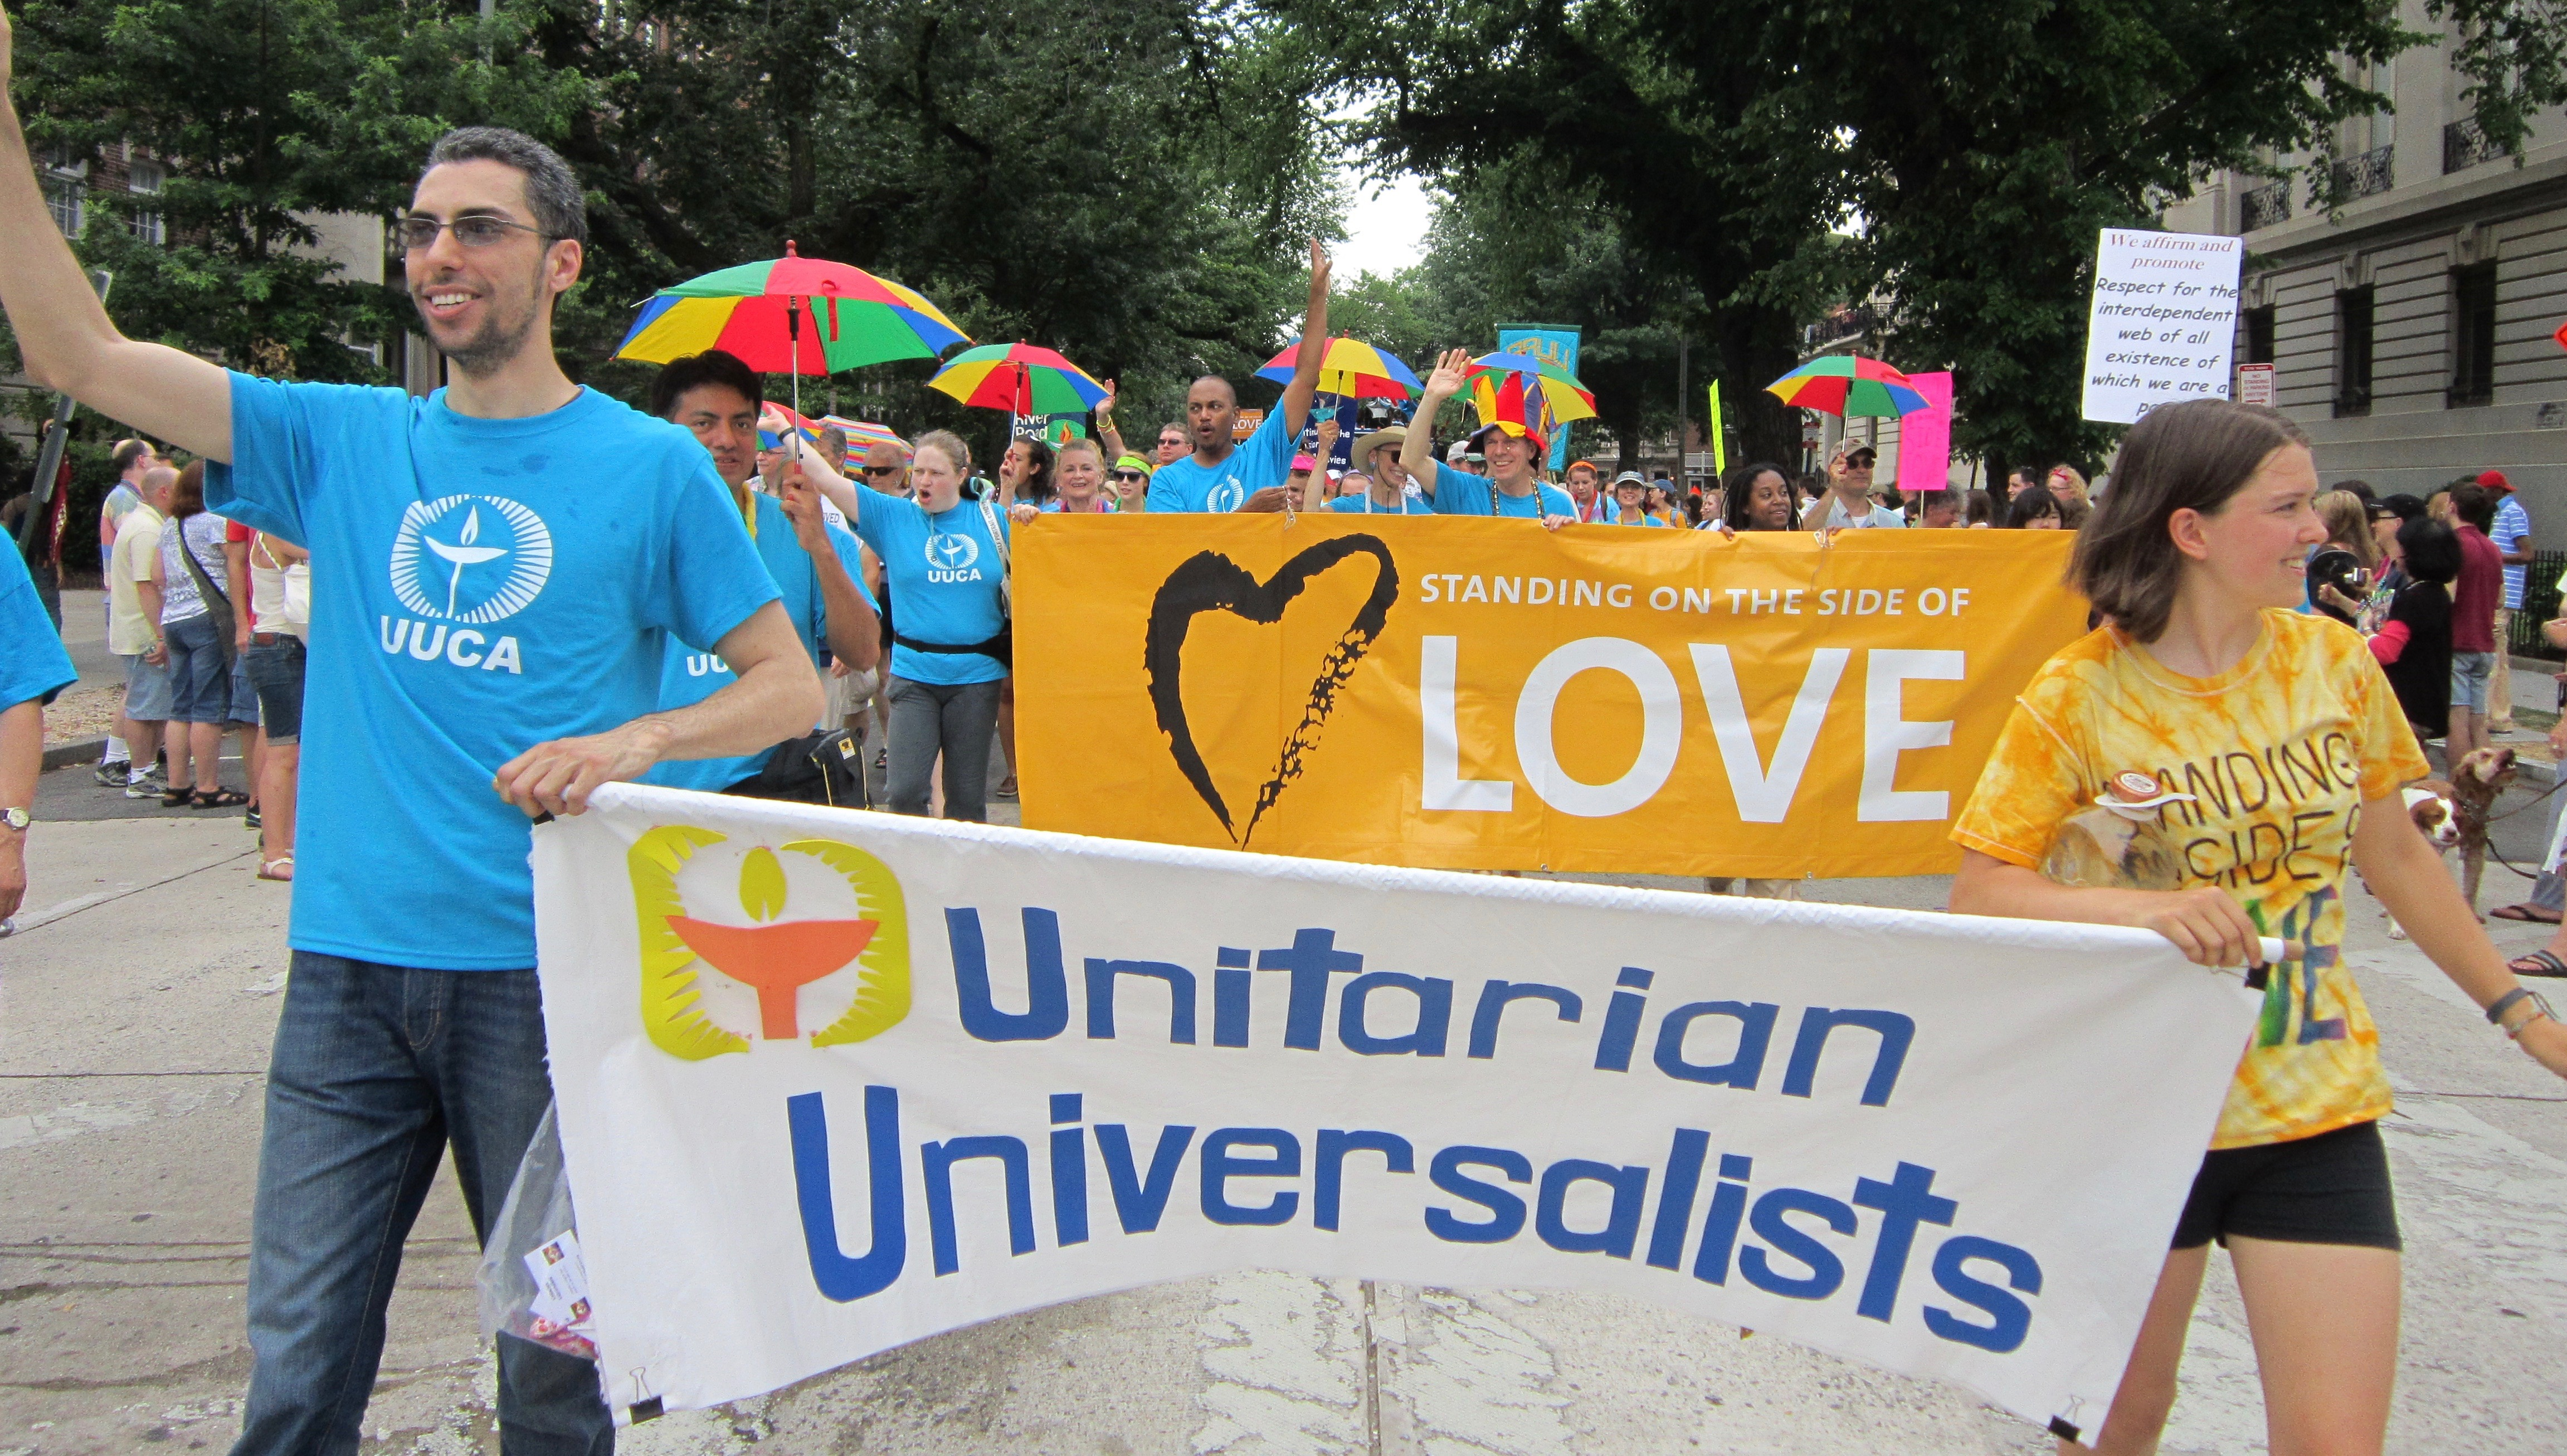 dating site for unitarian universalist First jefferson unitarian universalist church - fort worth's historic uu church   go to mobile website  ec stanton community school is a democratic  school start-up in fort worth, texas with an opening date of august 21st, 2017  here.